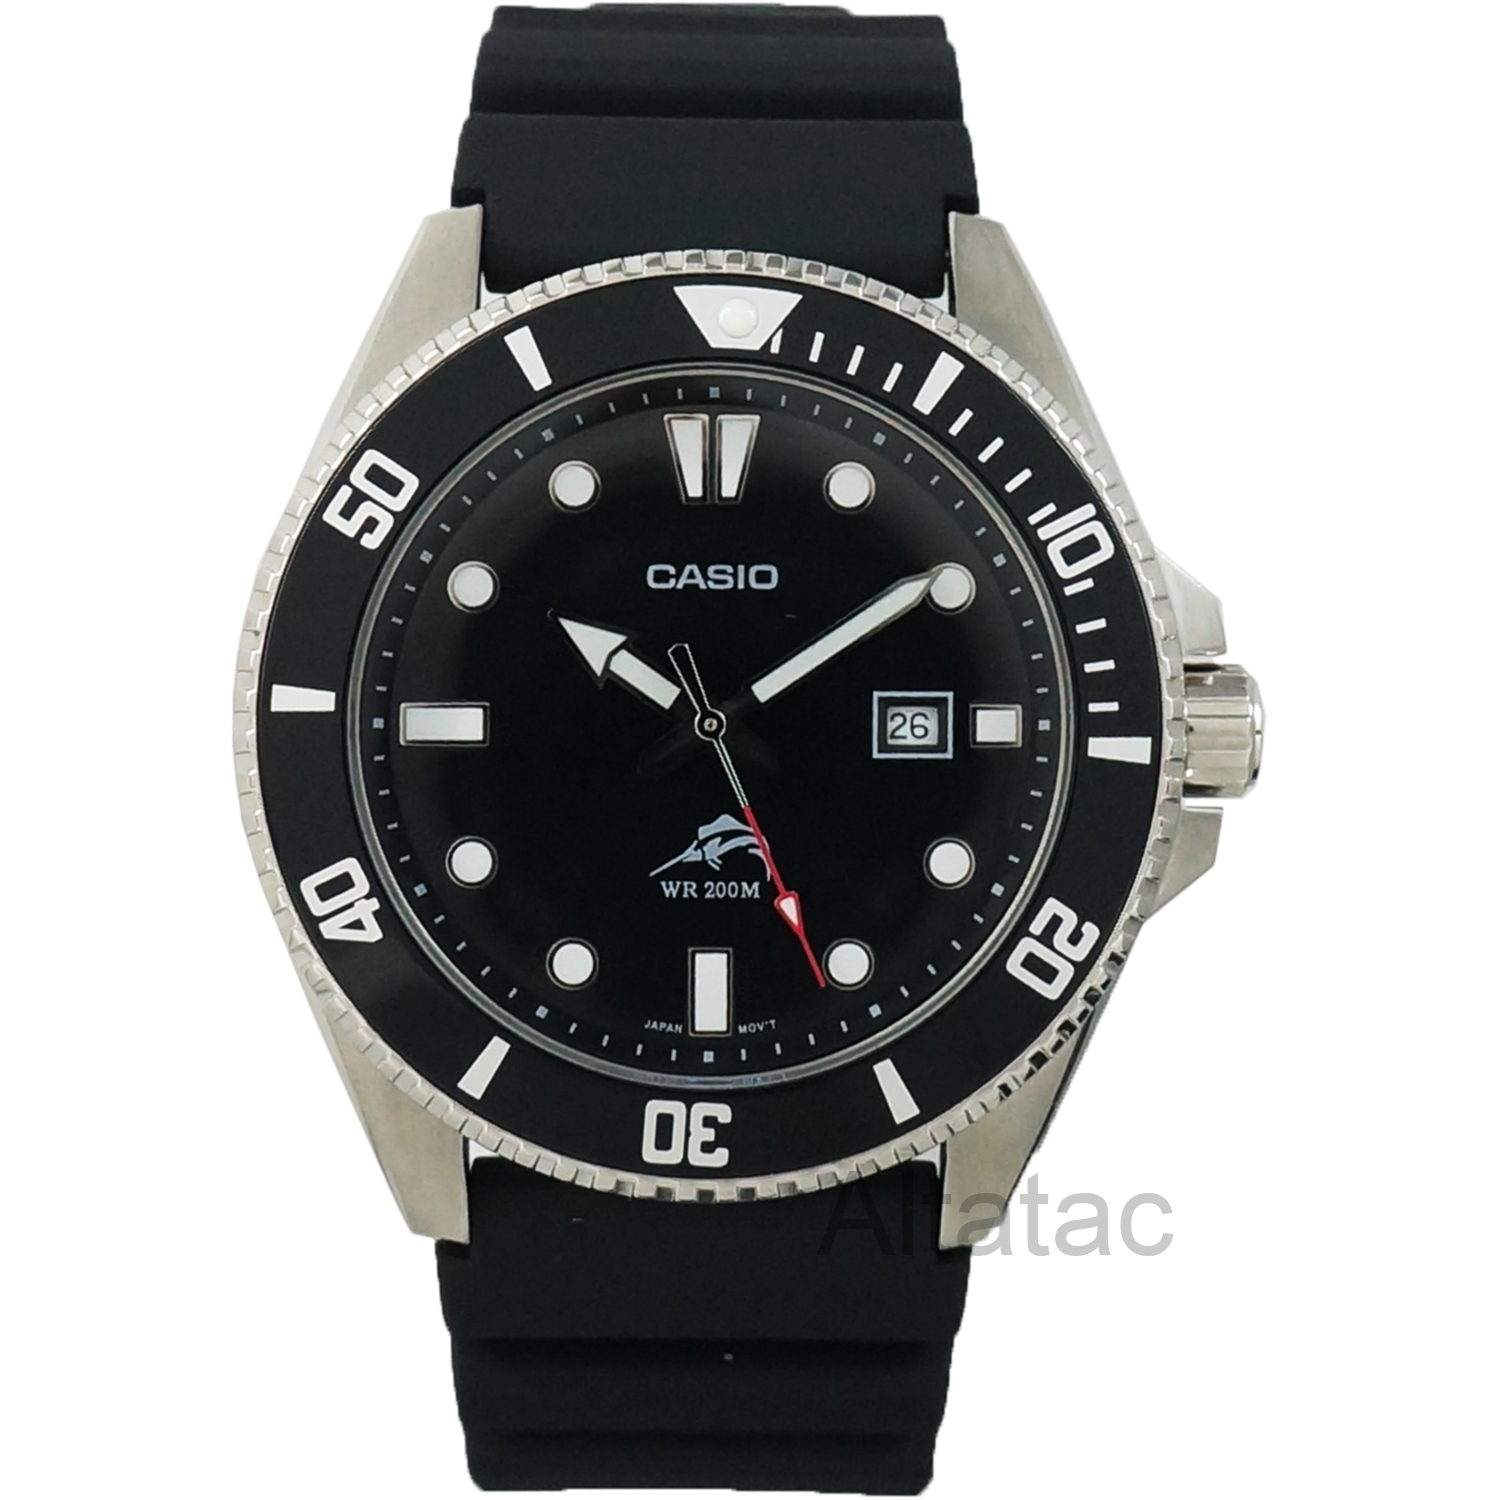 Casio MDV106-1A Men's Duro 200M Analog Diver's Watch w/ Black Resin Band